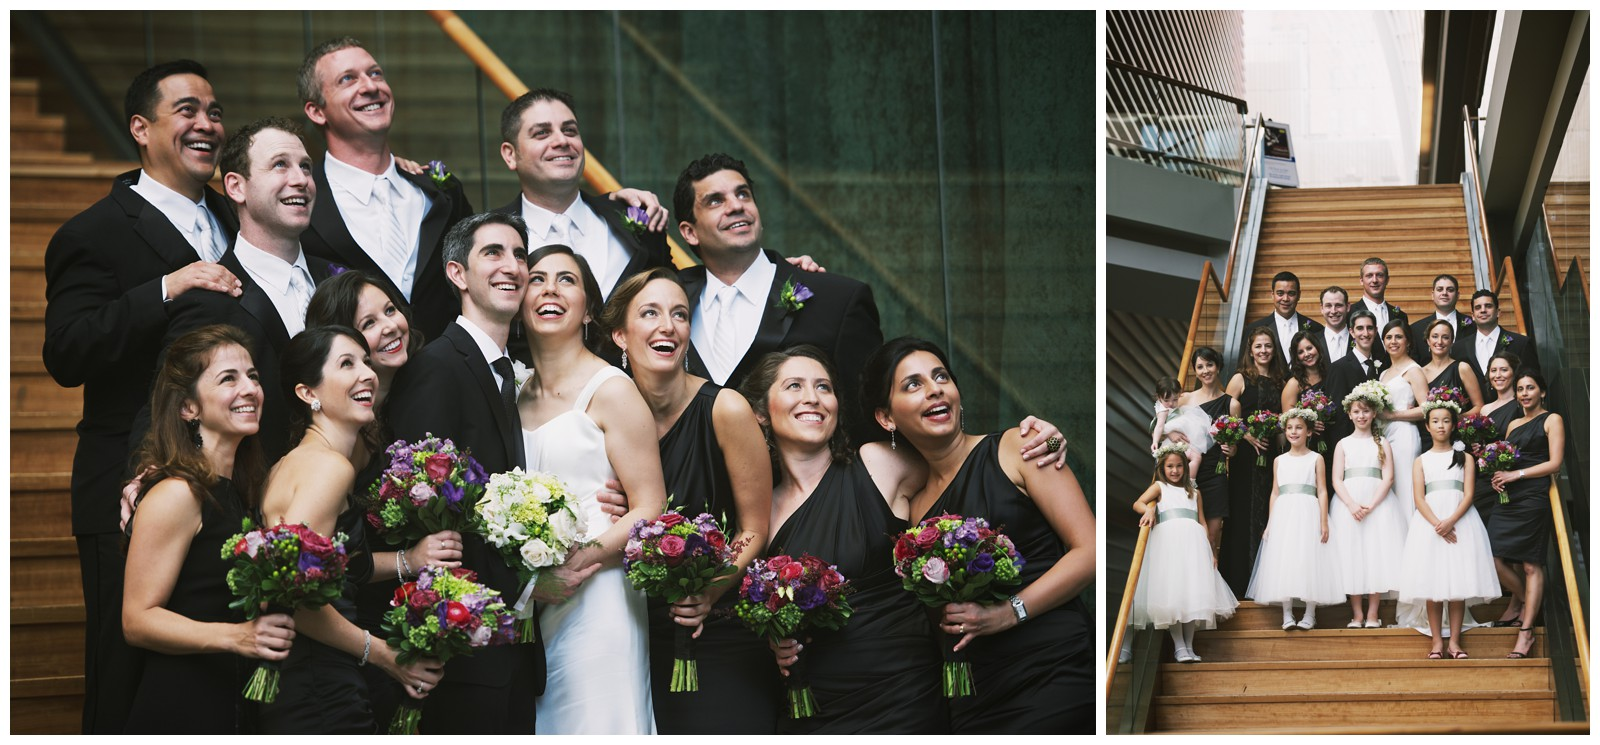 Vanessa and Adam's Wedding at Kimmel Center Philadelphia_0028